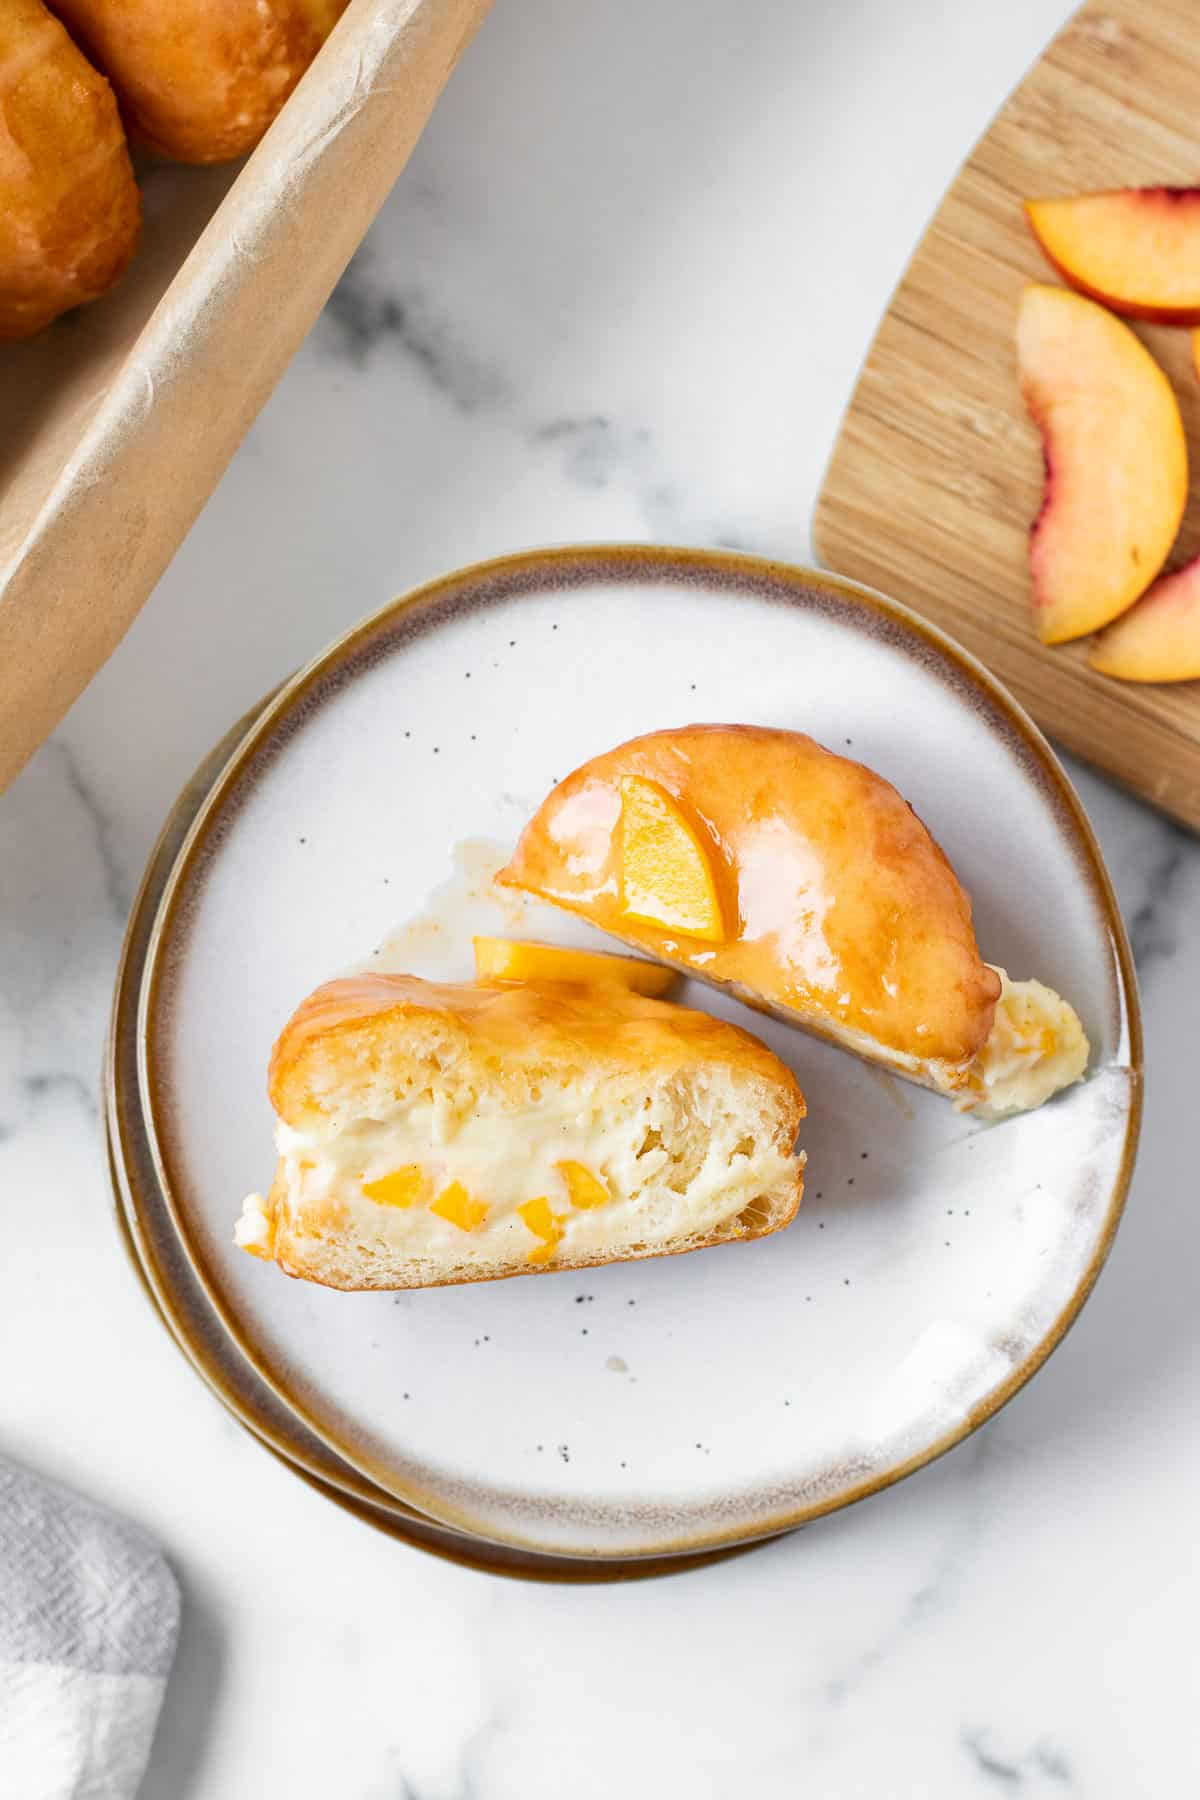 peach donut filled with cream split in half on a stack of plates with cutting board with peaches next to it